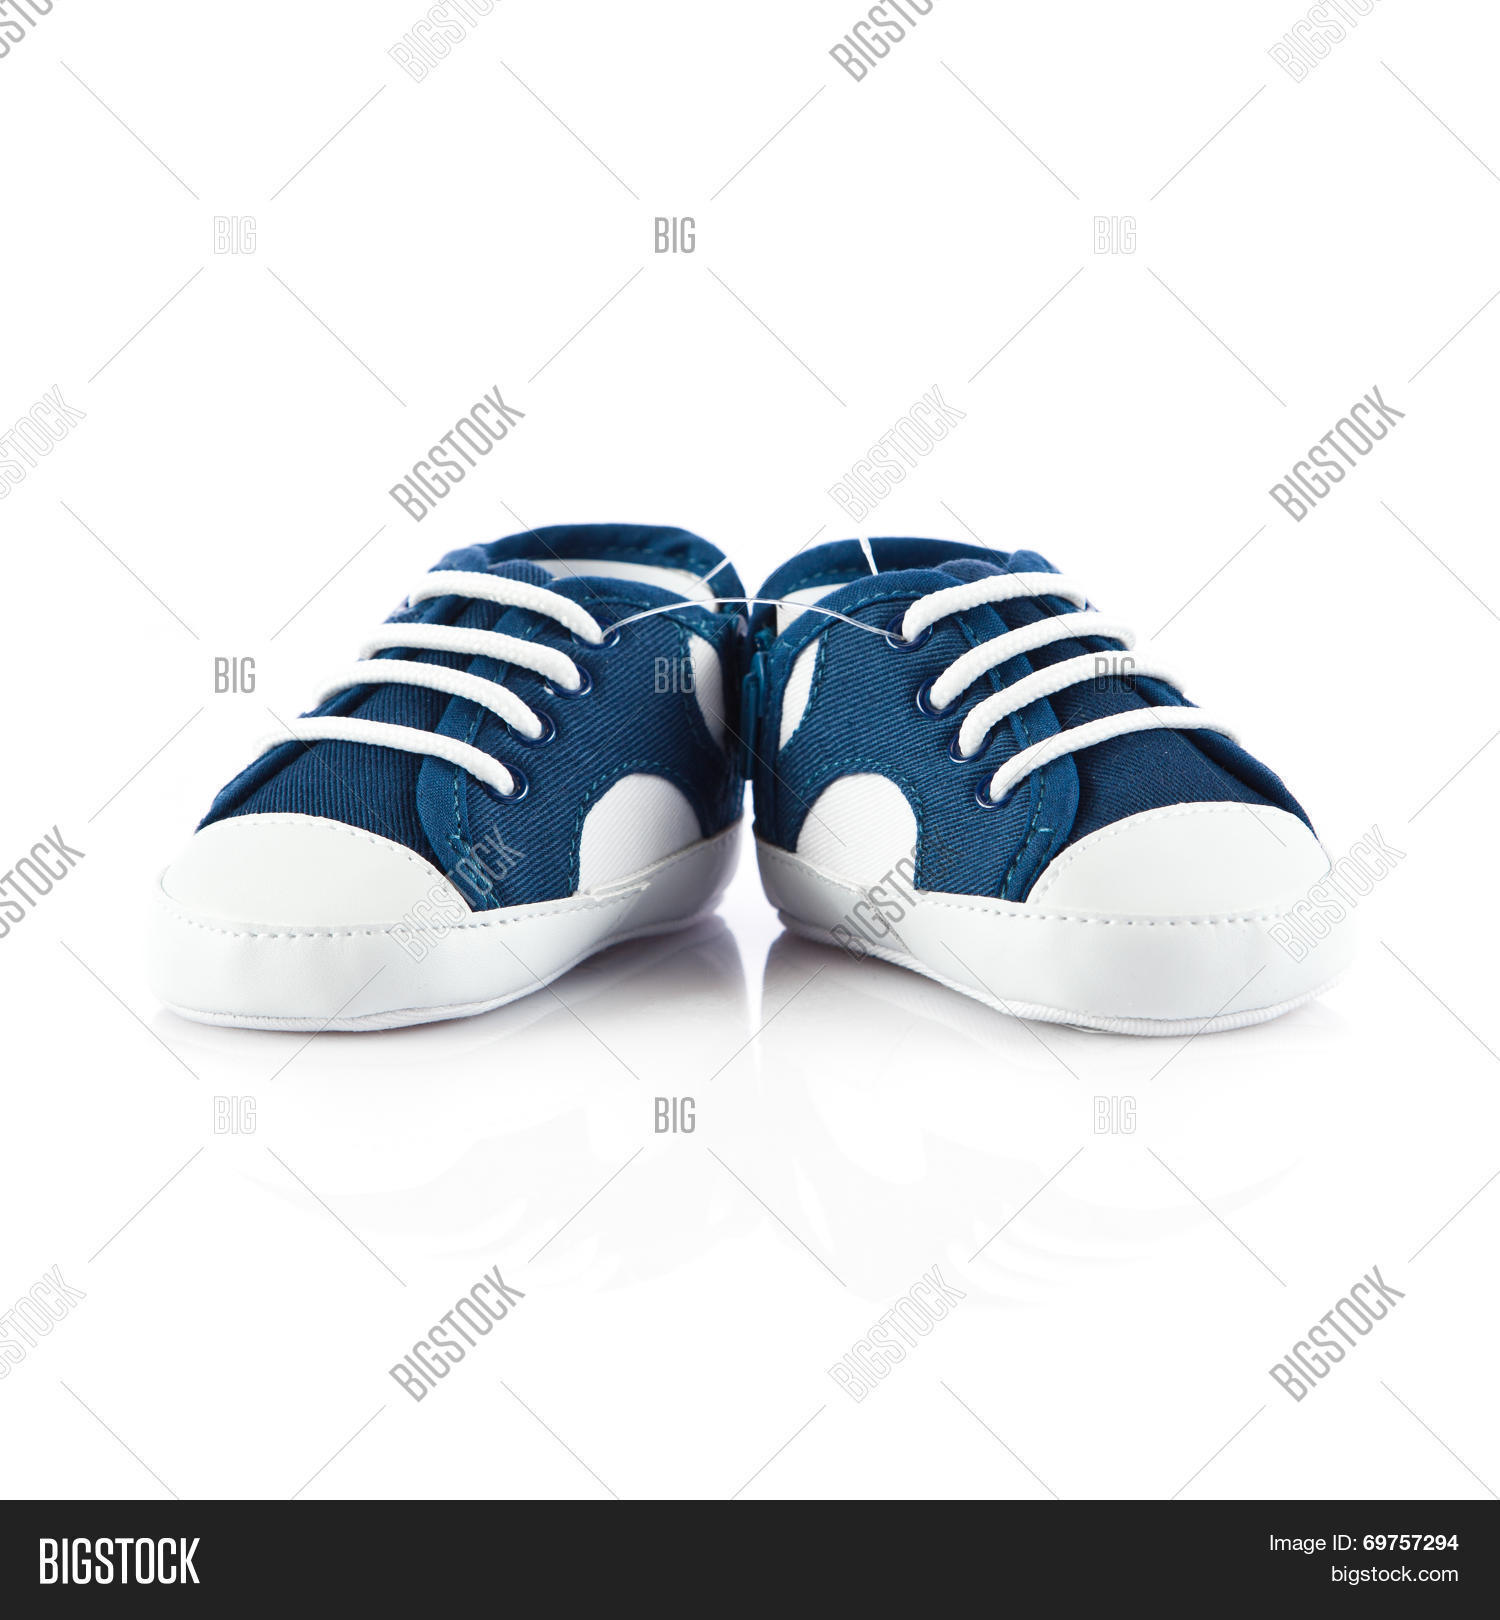 886851d96 Blue Baby Shoes Isolated On White Background